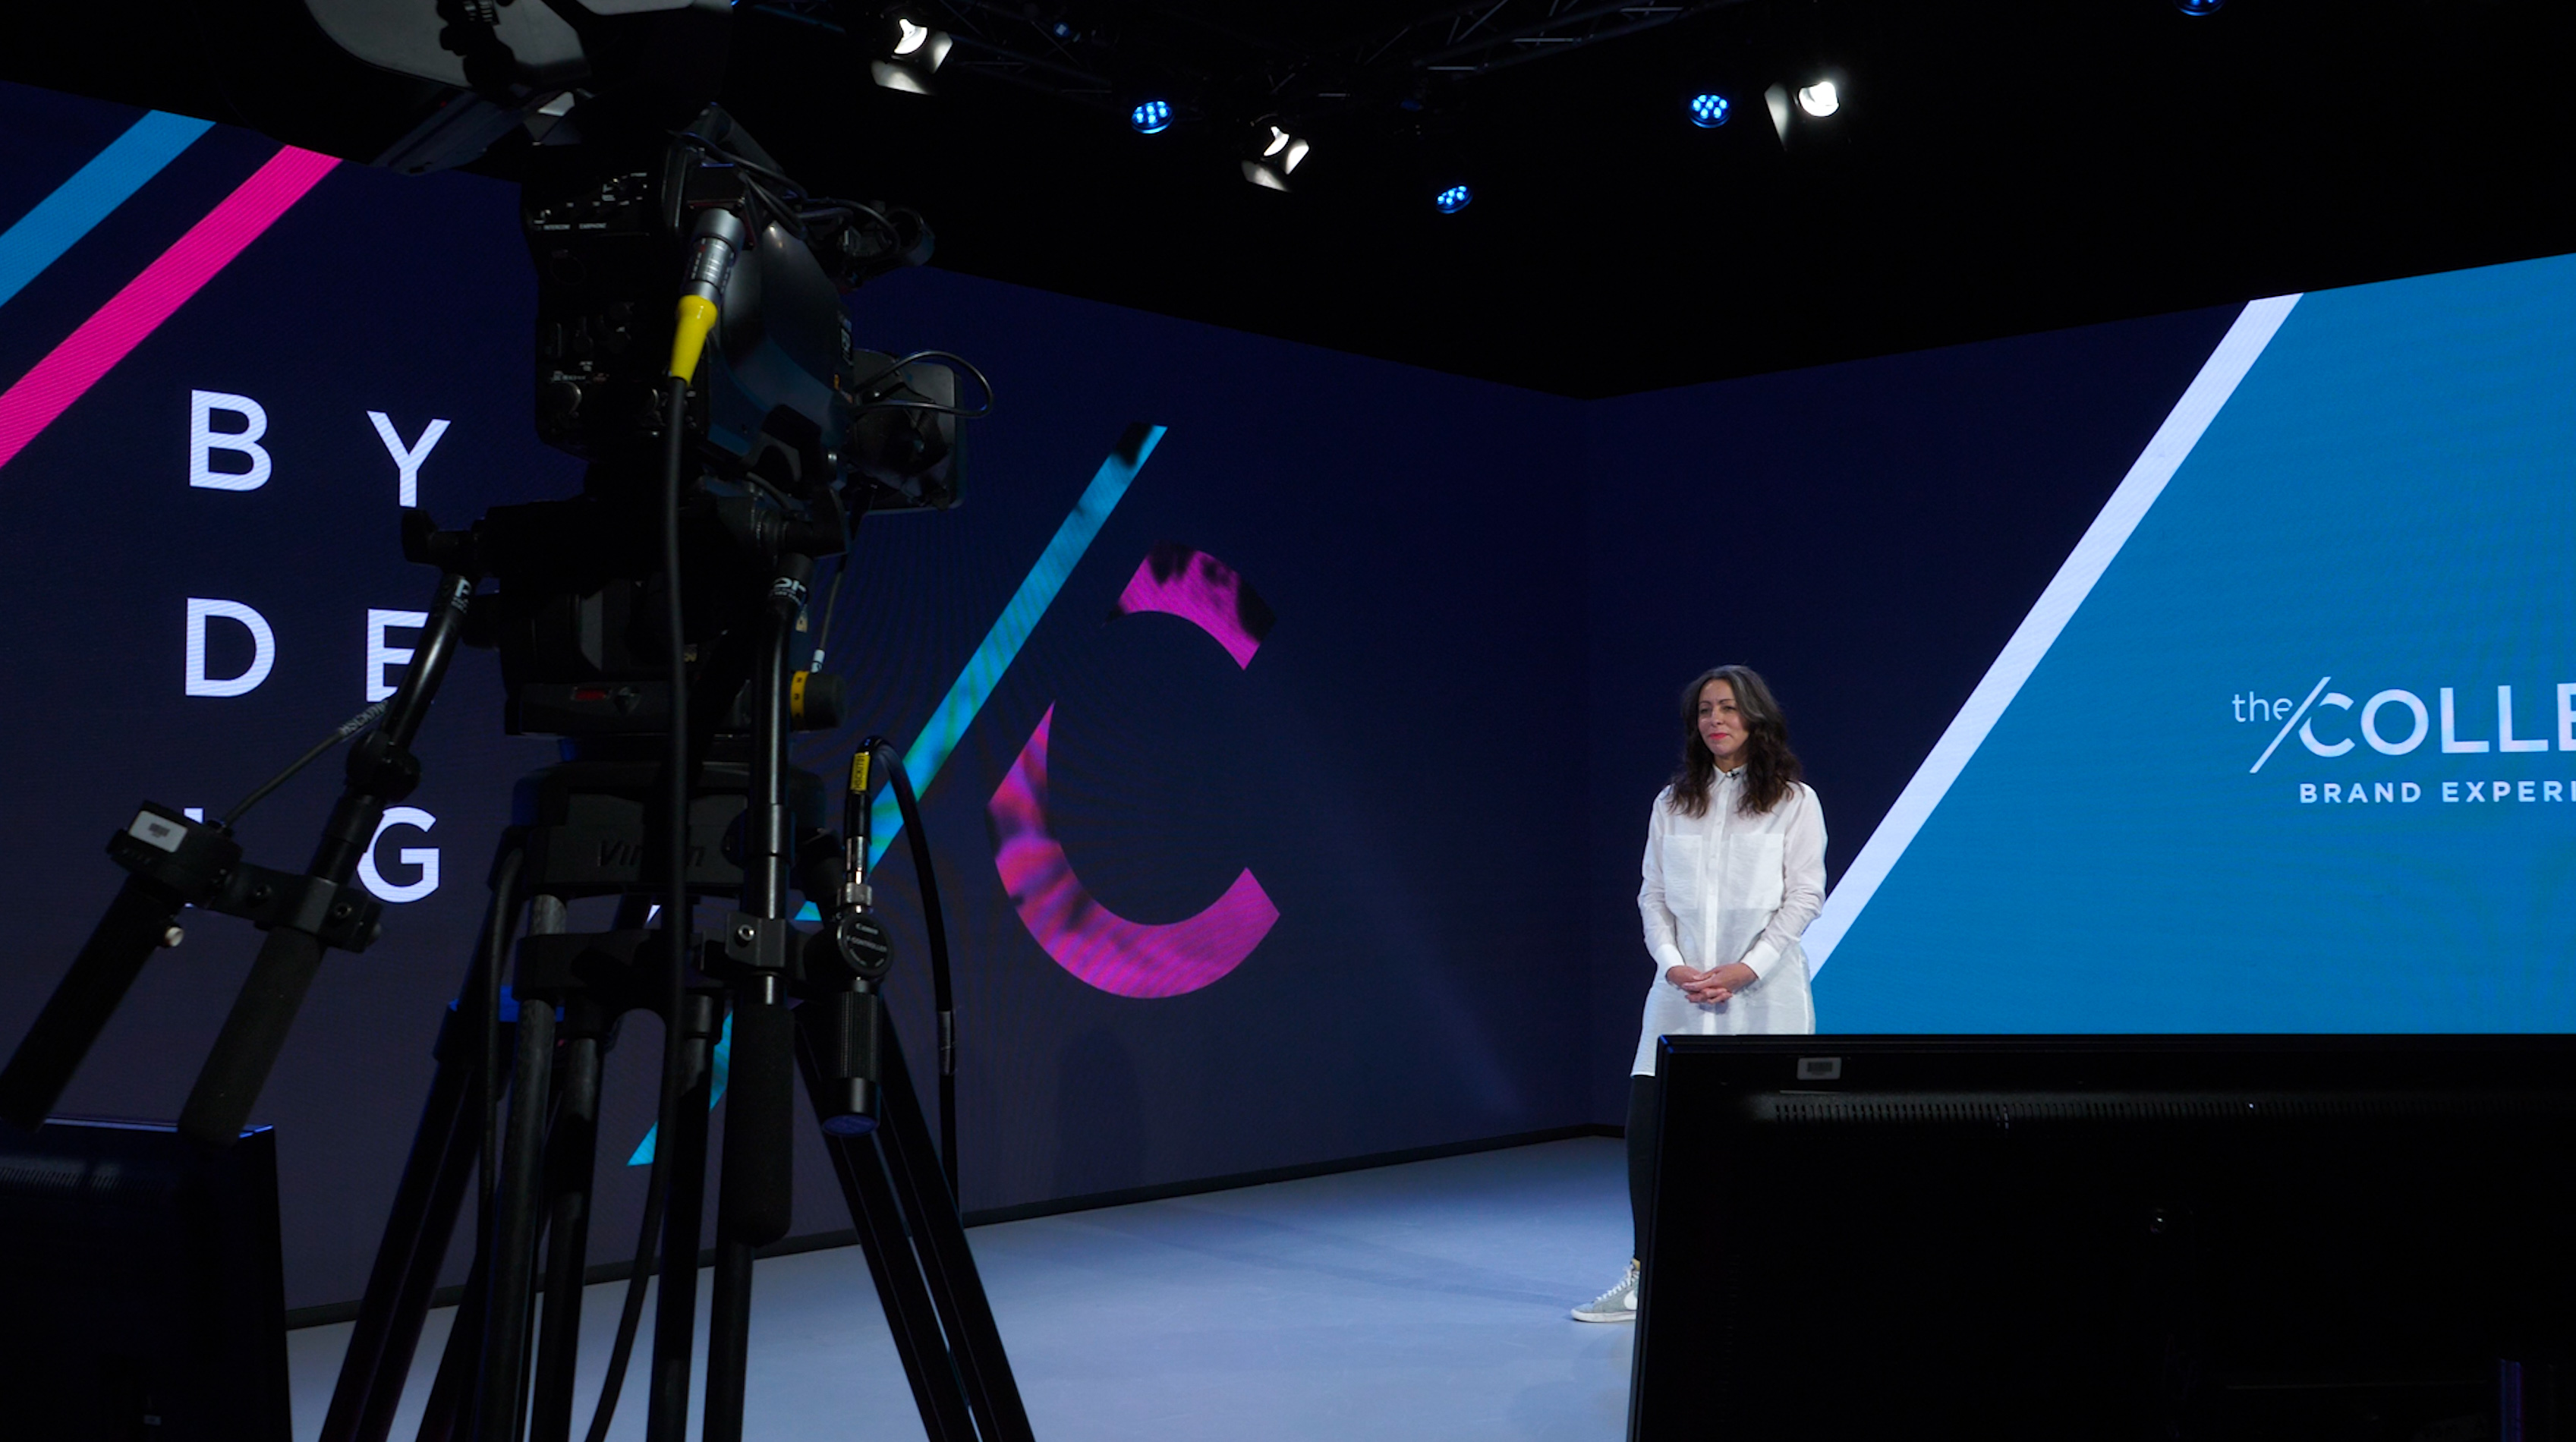 Emma Coleman of BCD M&E's The Collective presenting on stage during a Virtual Event